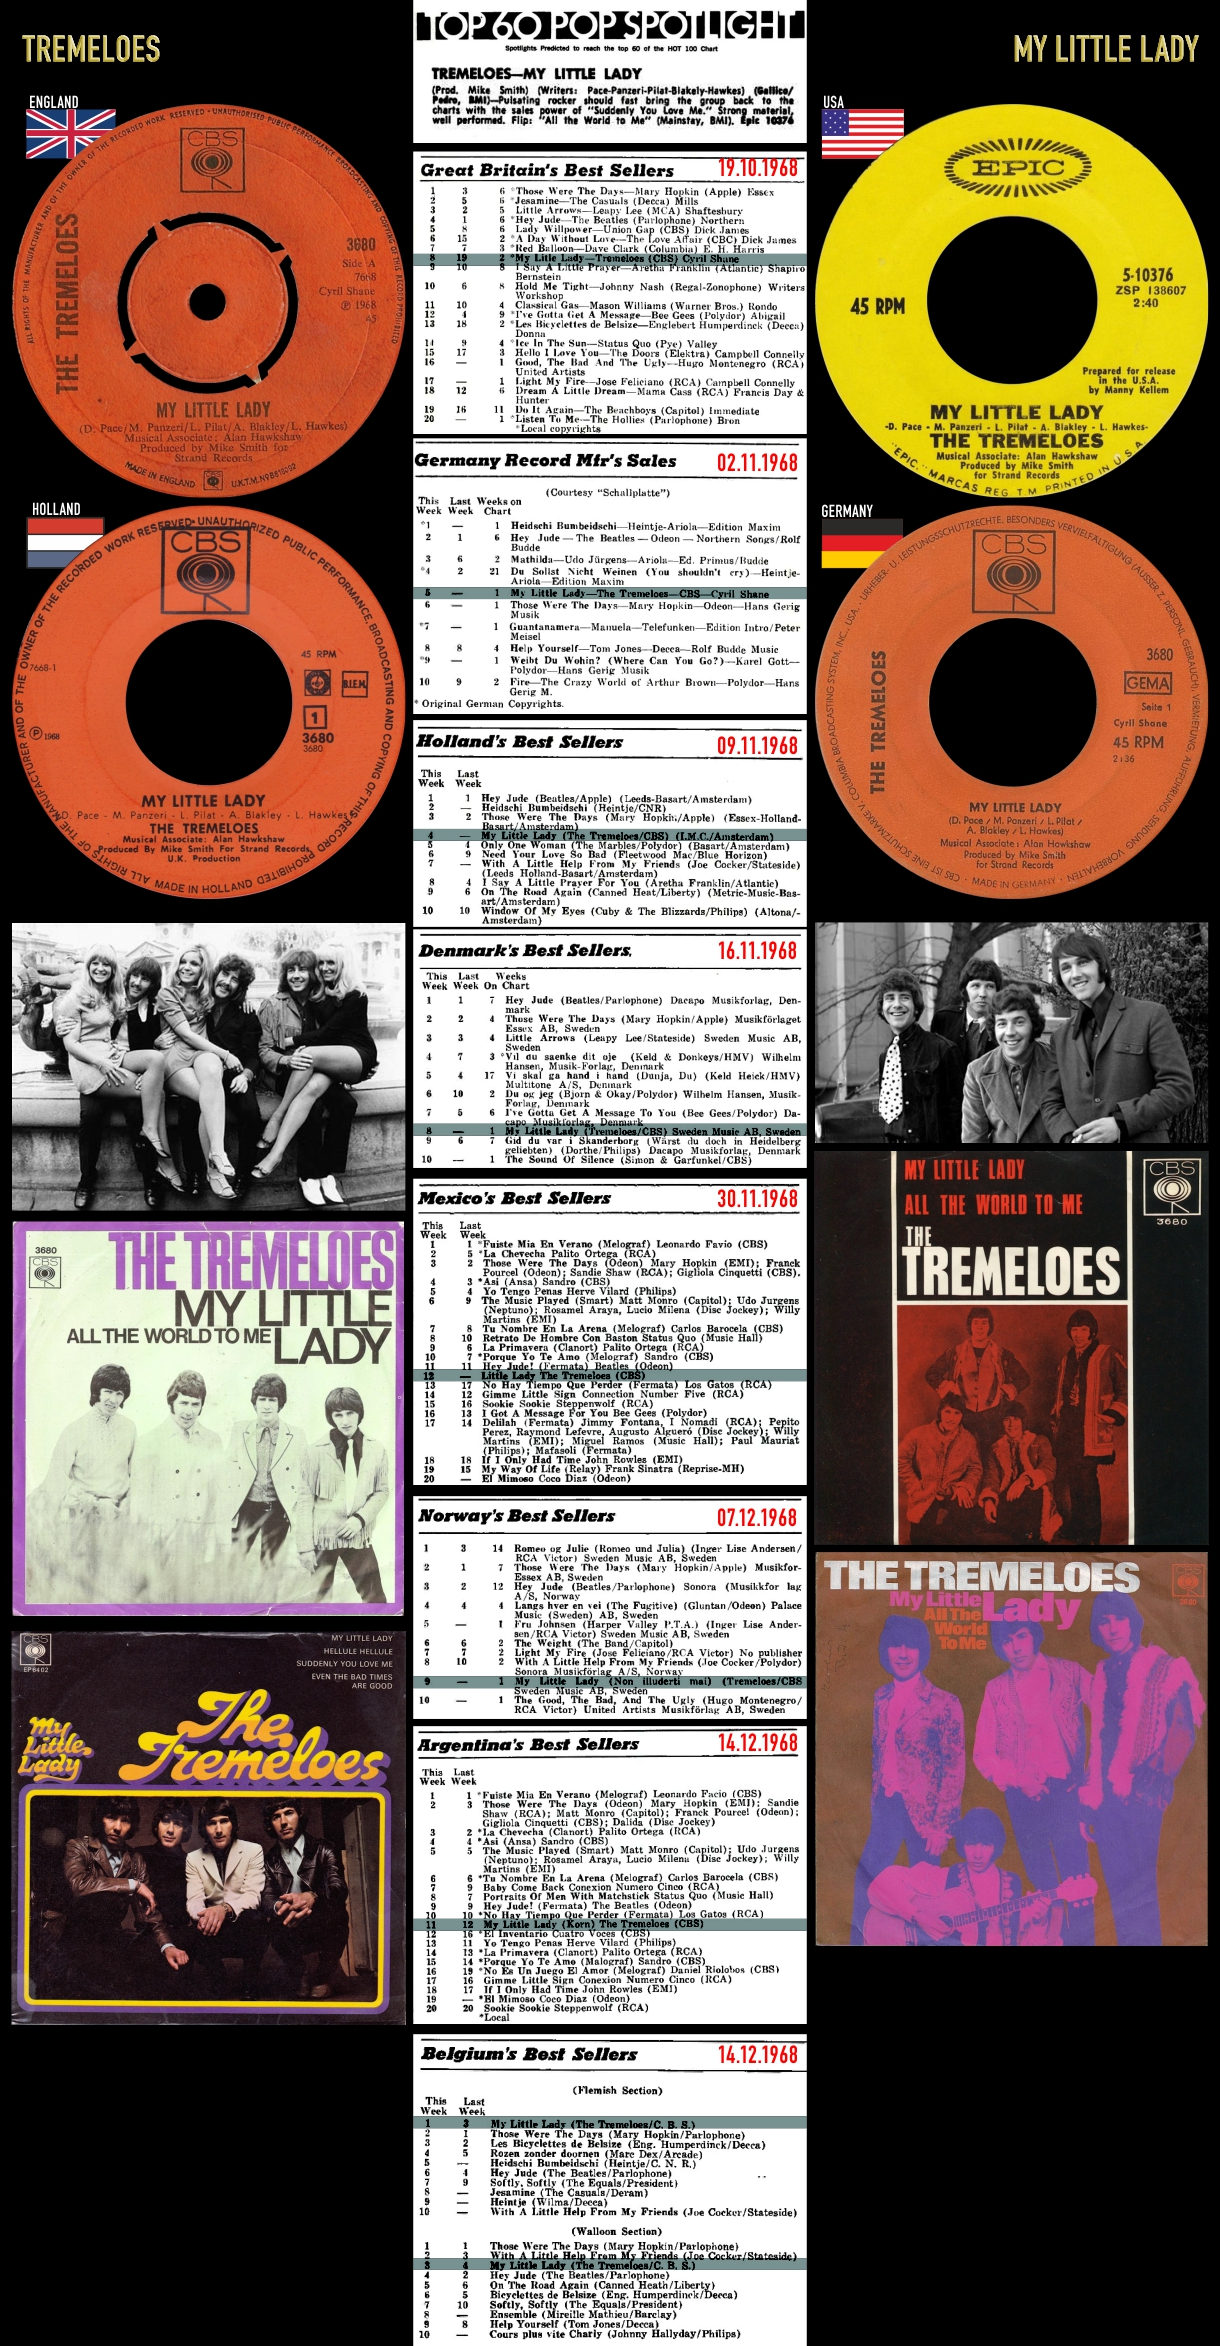 680918_Tremeloes_My Little Lady